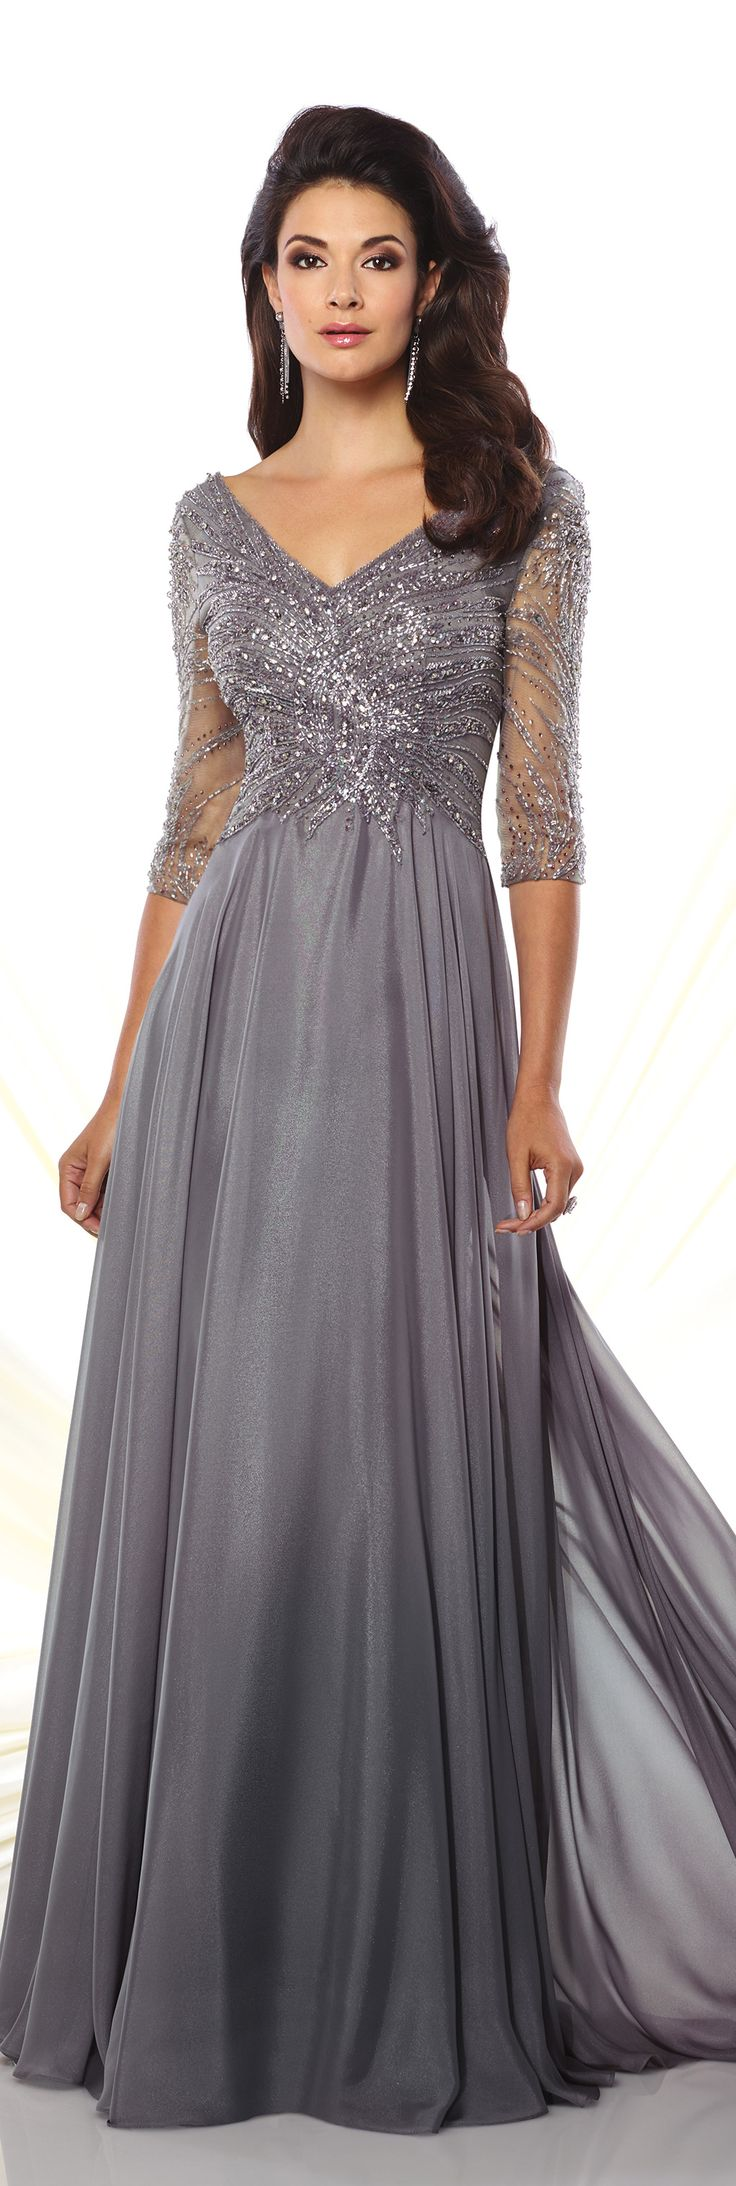 Best 25+ Formal evening gowns ideas on Pinterest | Evening ...